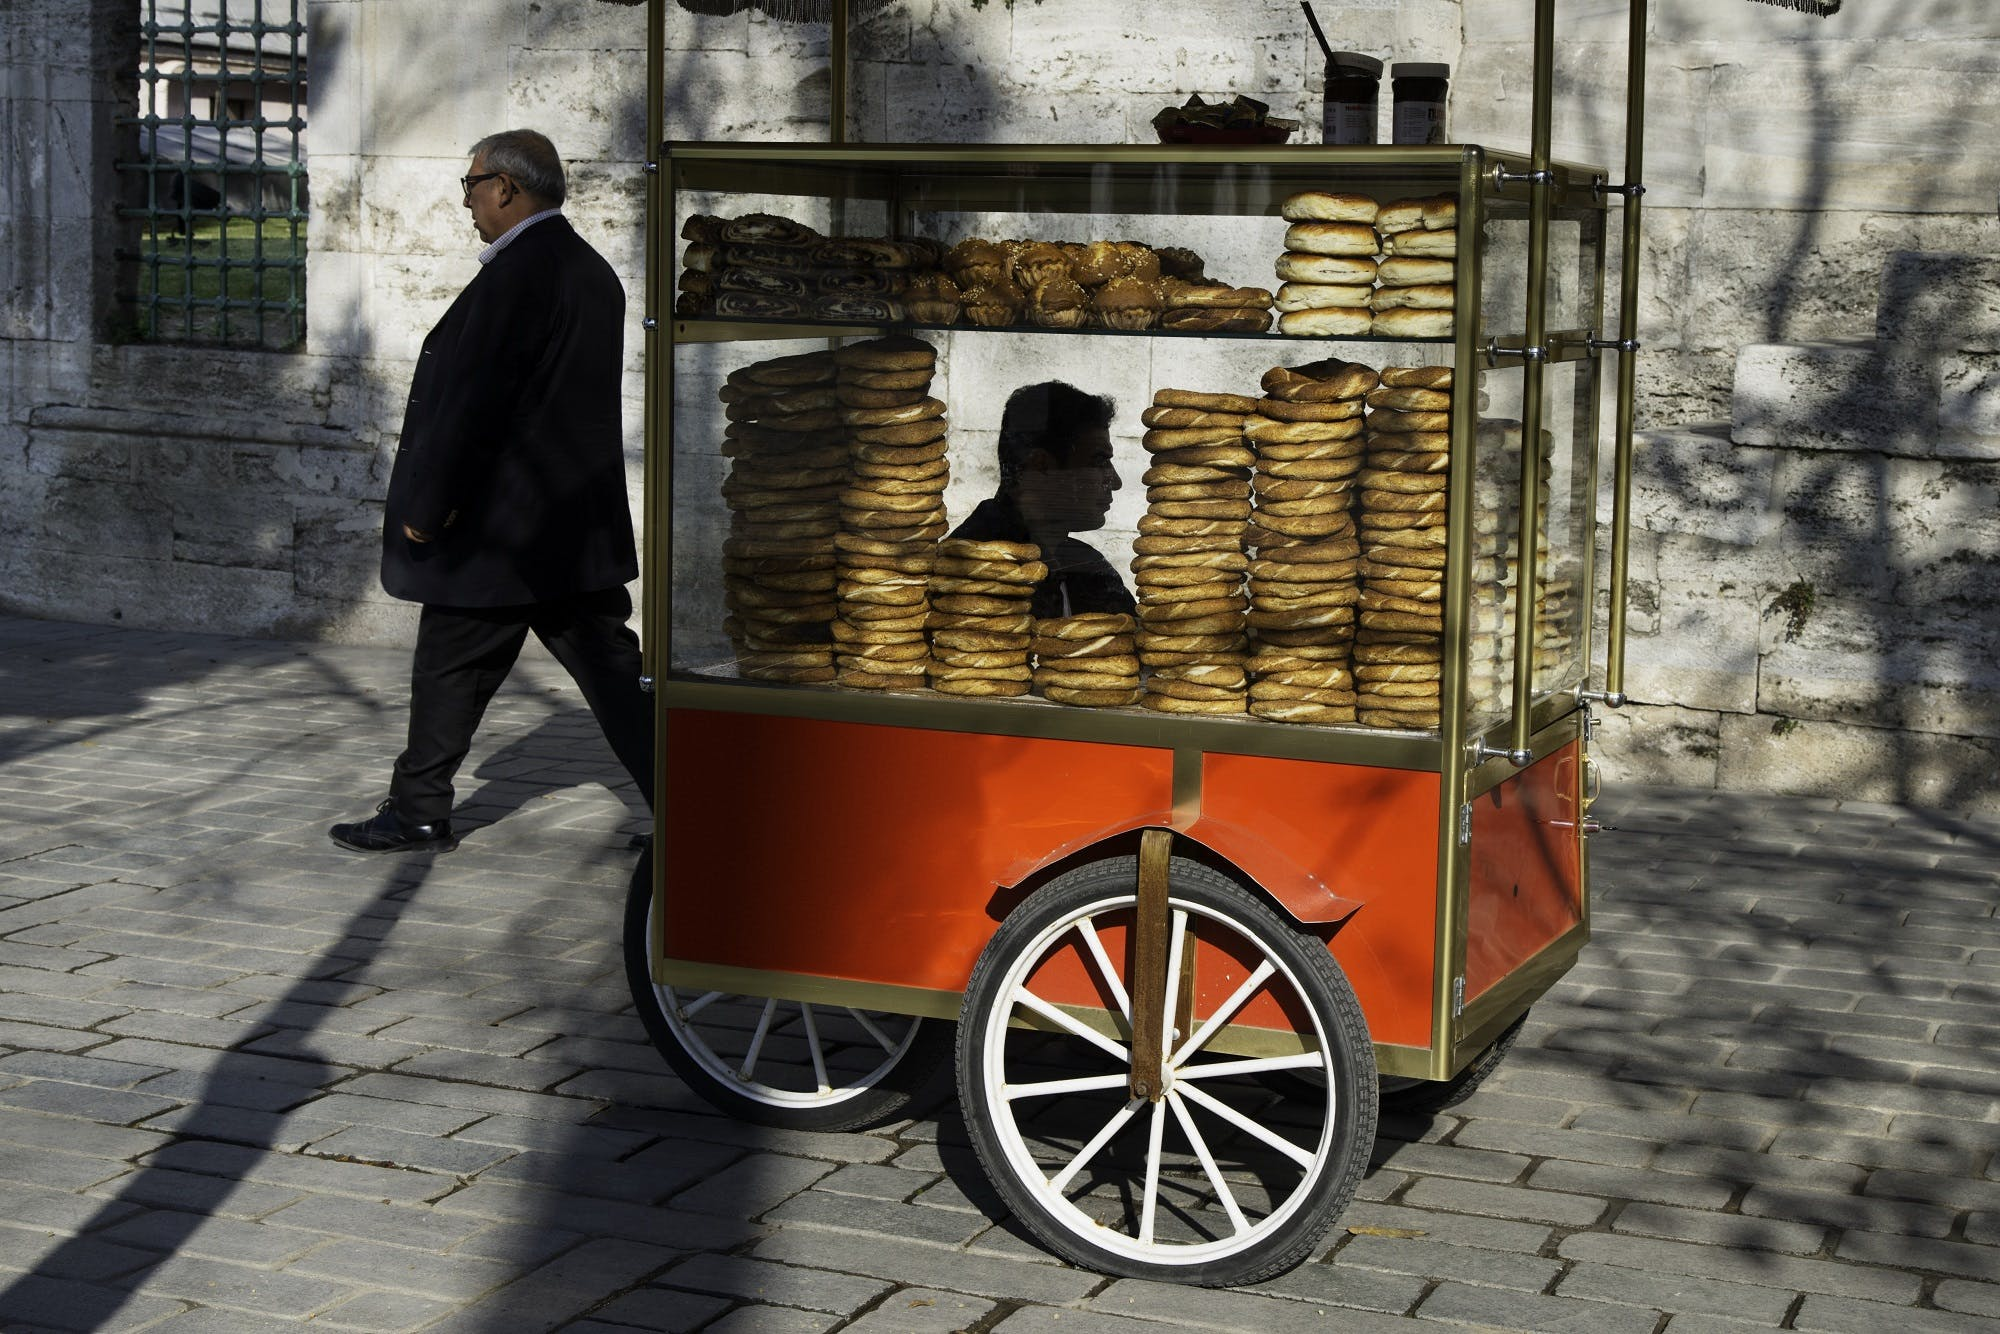 Istanbul by Steve McCurry